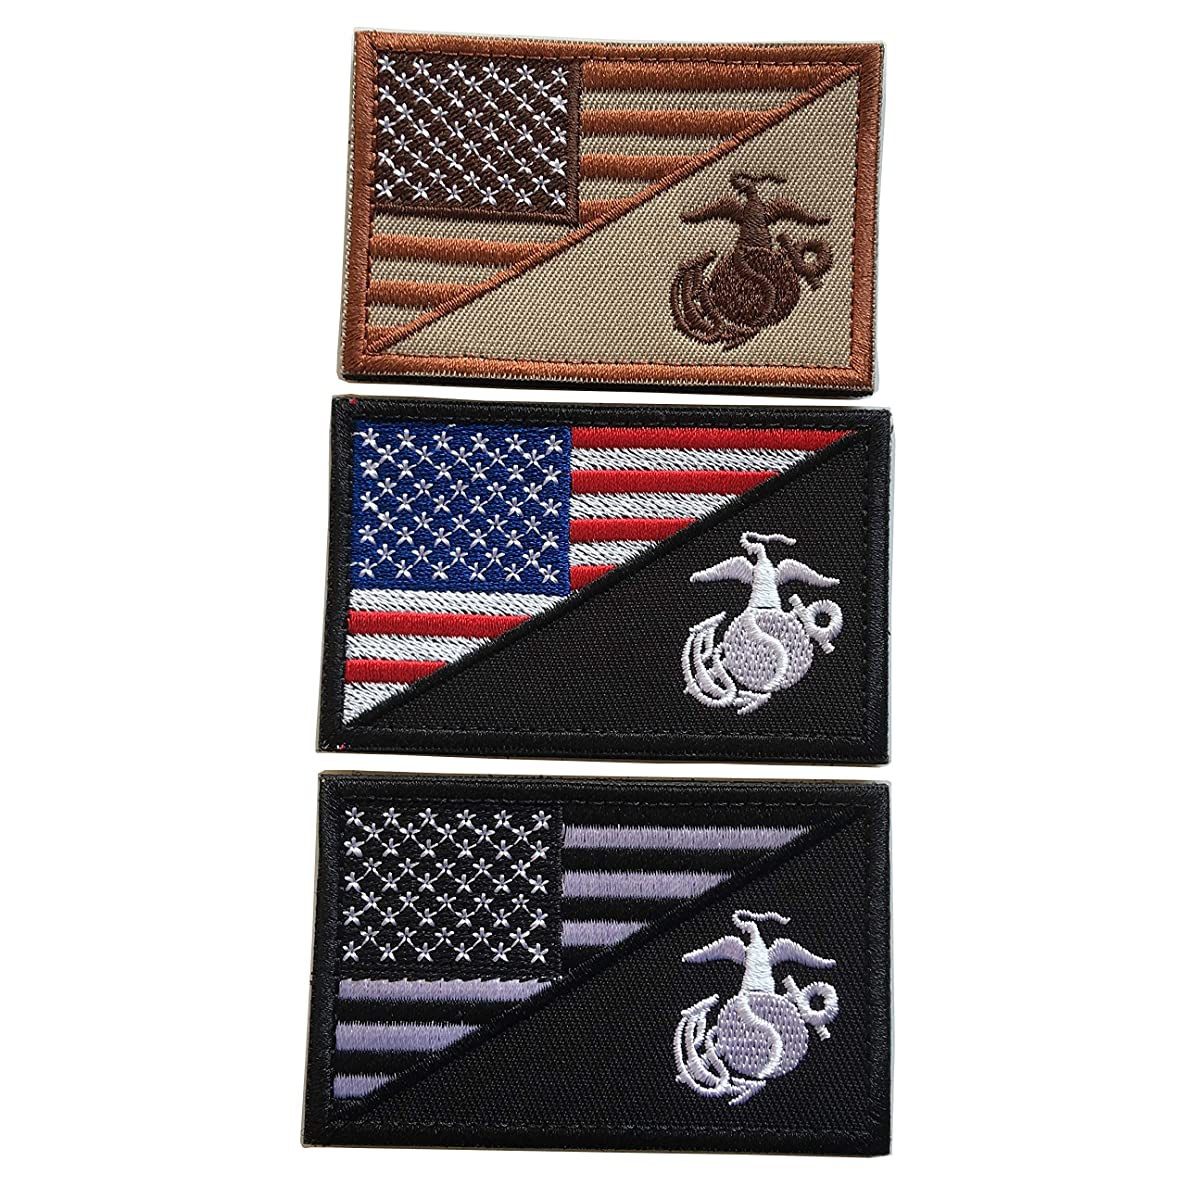 USA American Flag w/Marine Corps USMC Military Tactical Morale Badge Patch 3